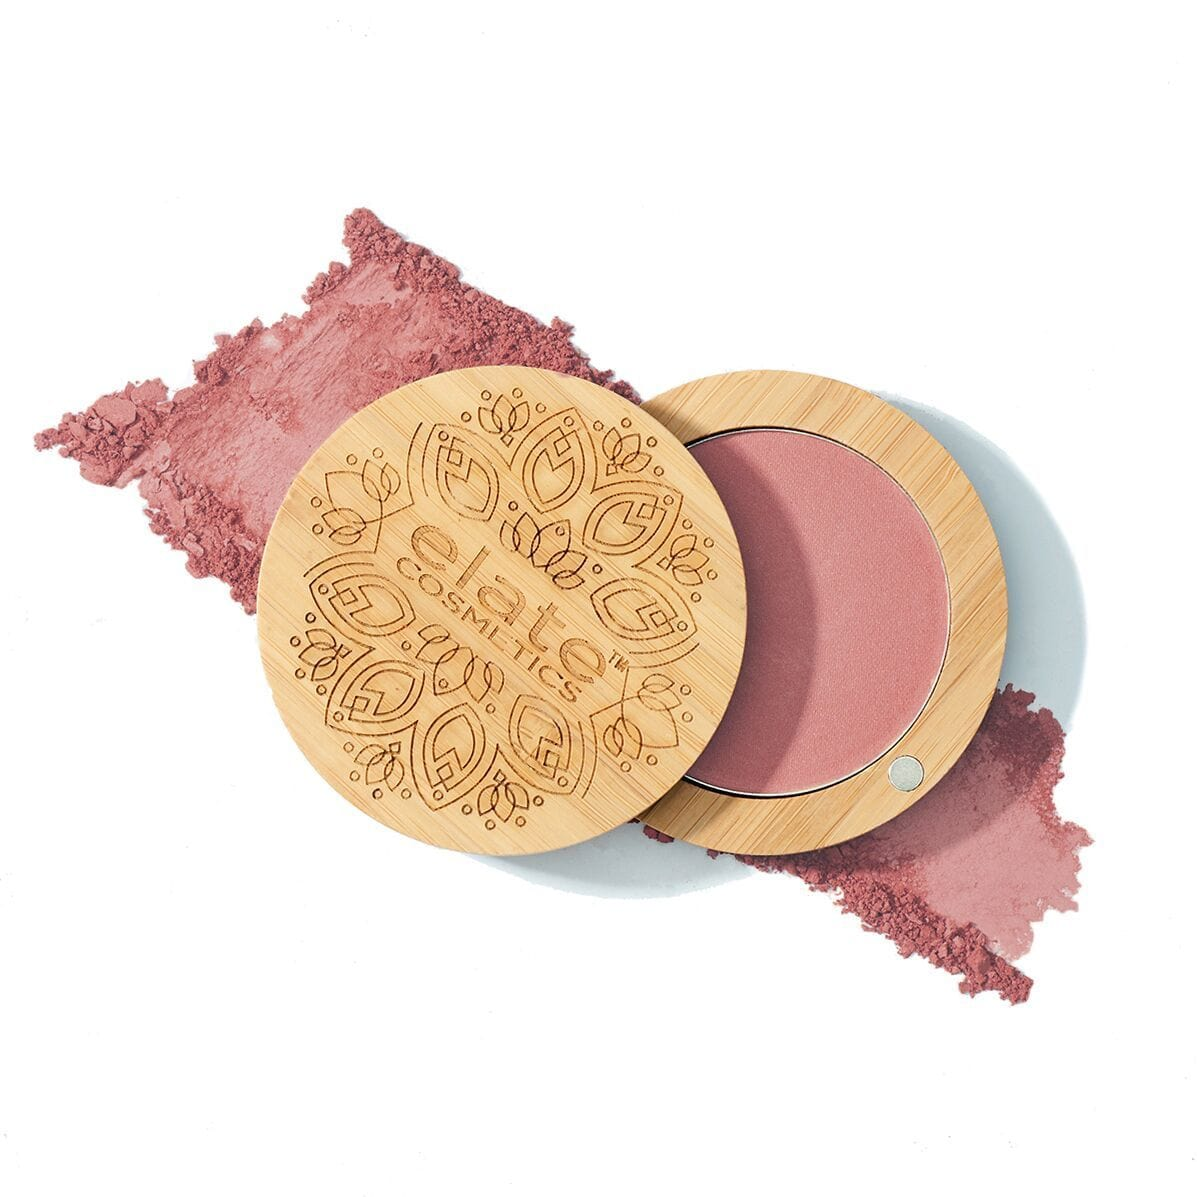 Elate Cosmetics Pressed Cheek Color Brave